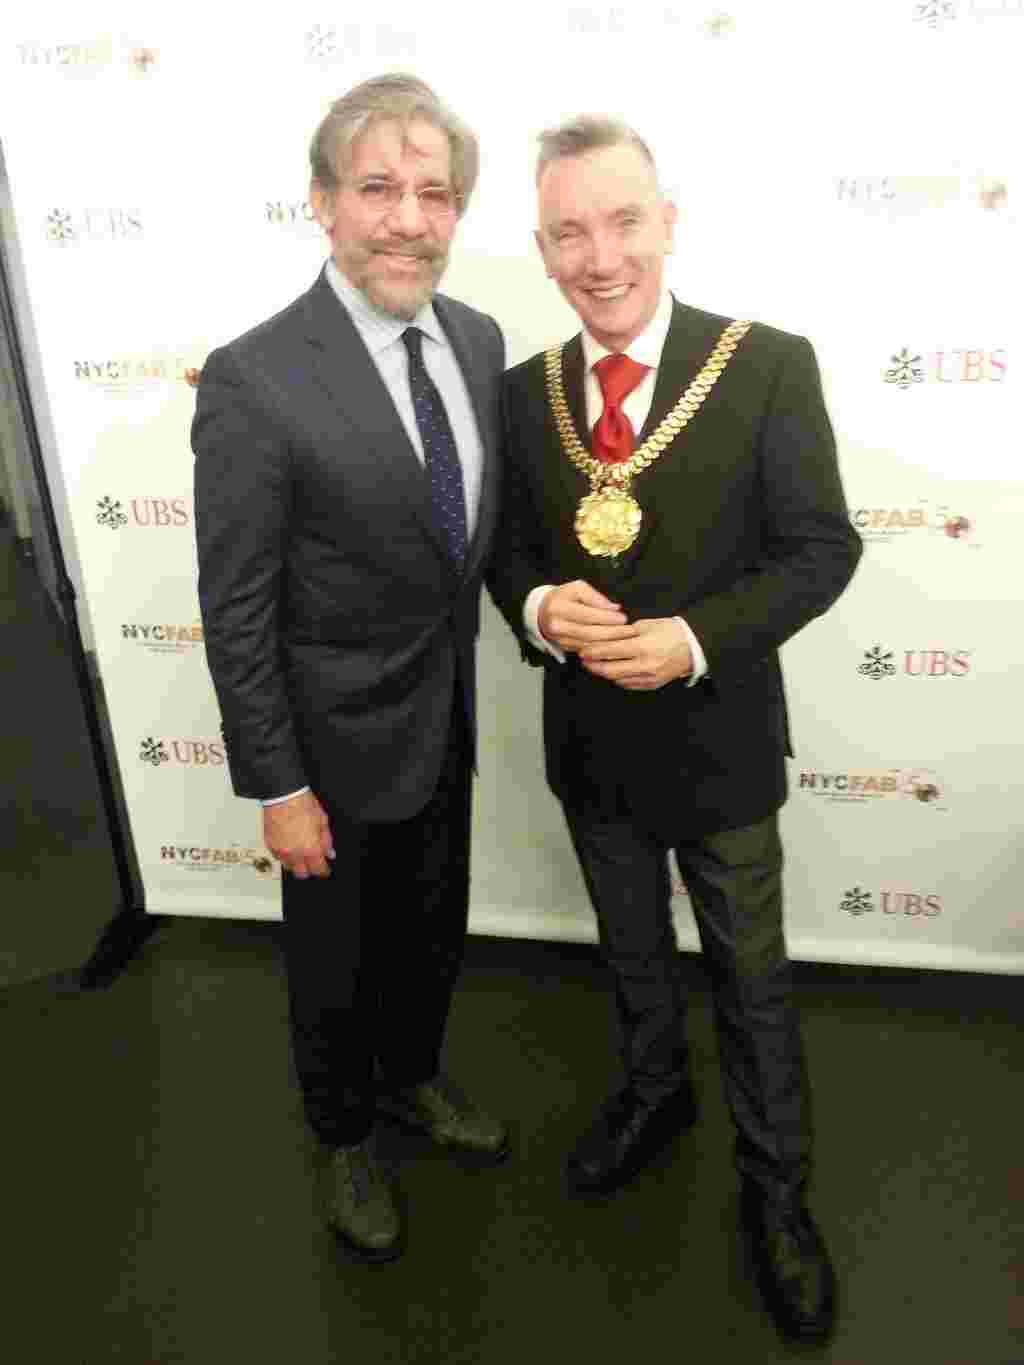 Geraldo with Mayor Gary Millar during an event in NYC.